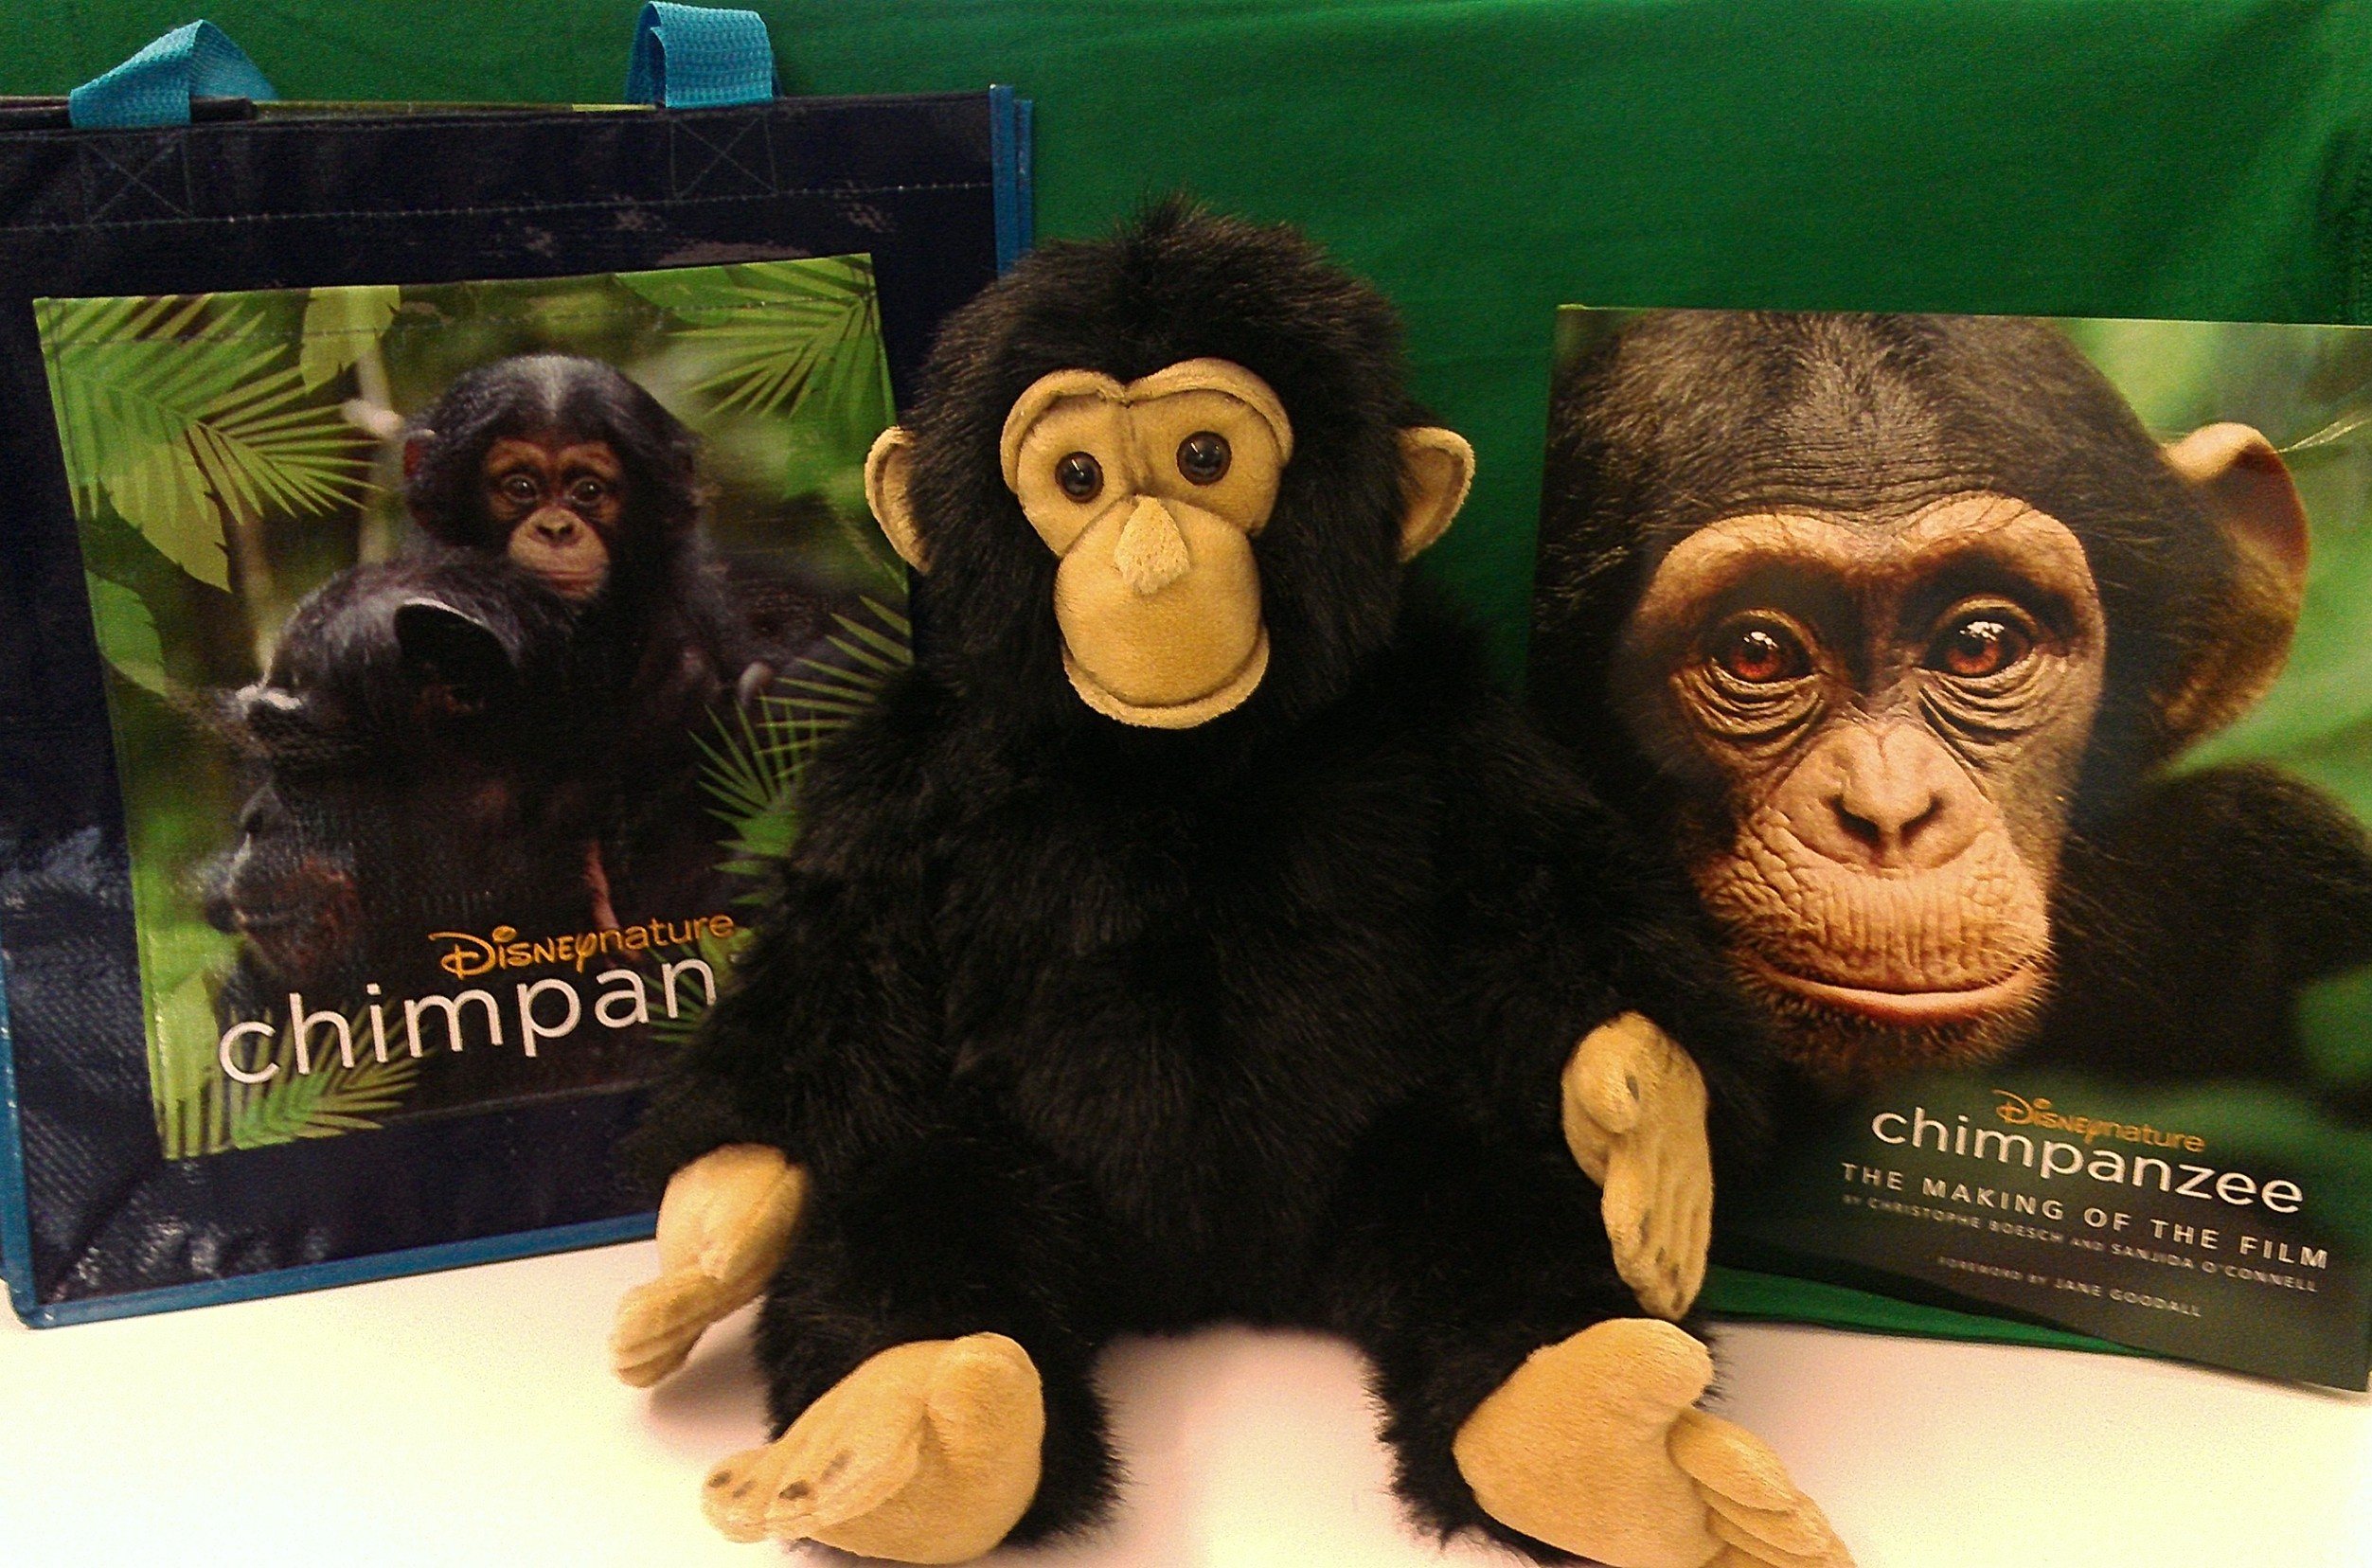 Chimpanzee Prize Pack Giveaway #DisneyGlobalEvent